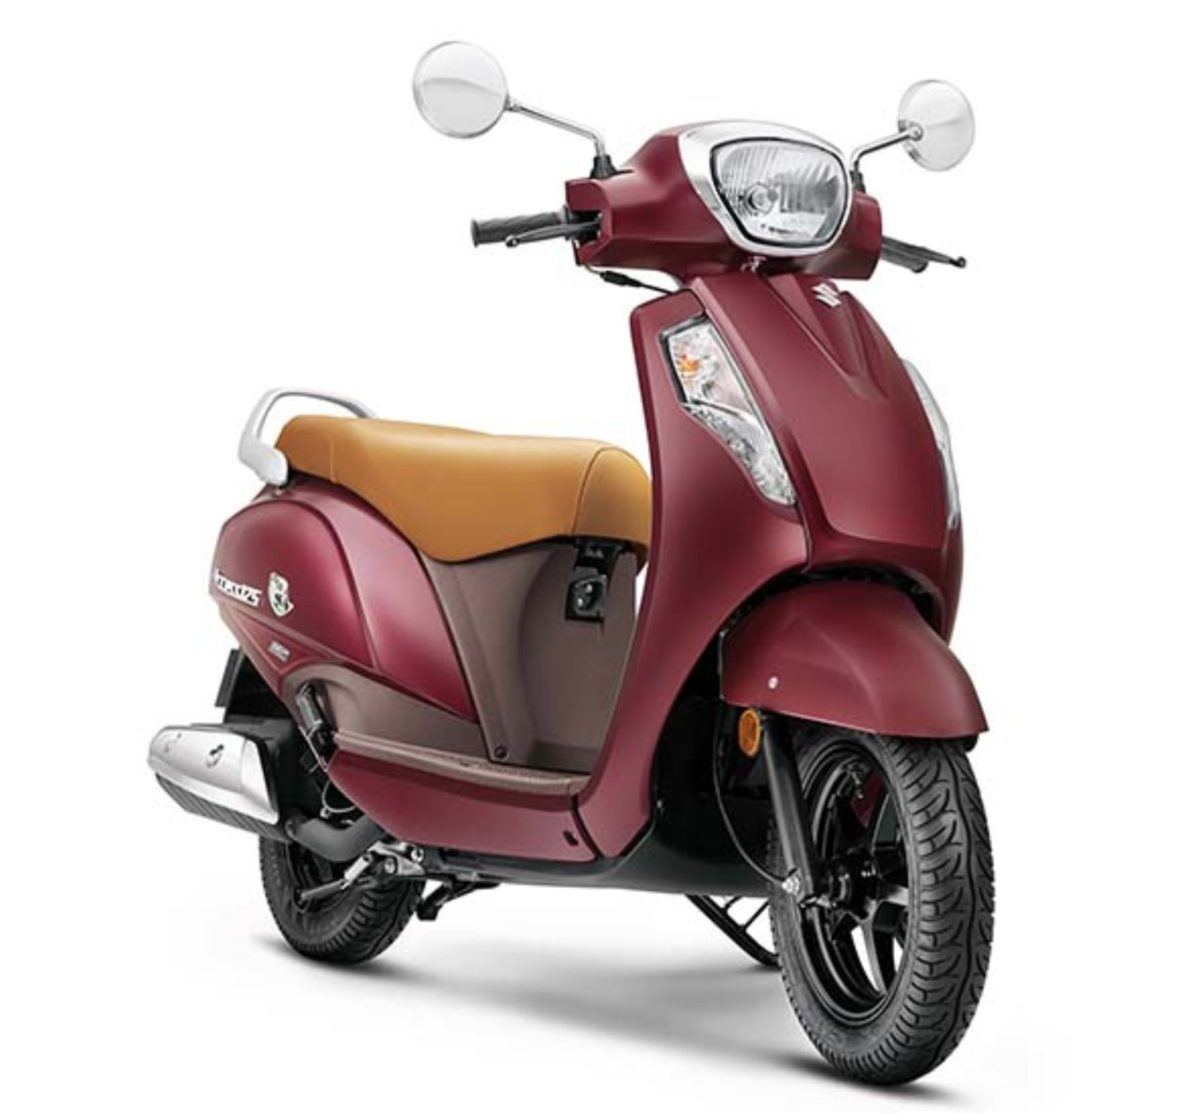 Suzuki Access 125 Matte Red 2